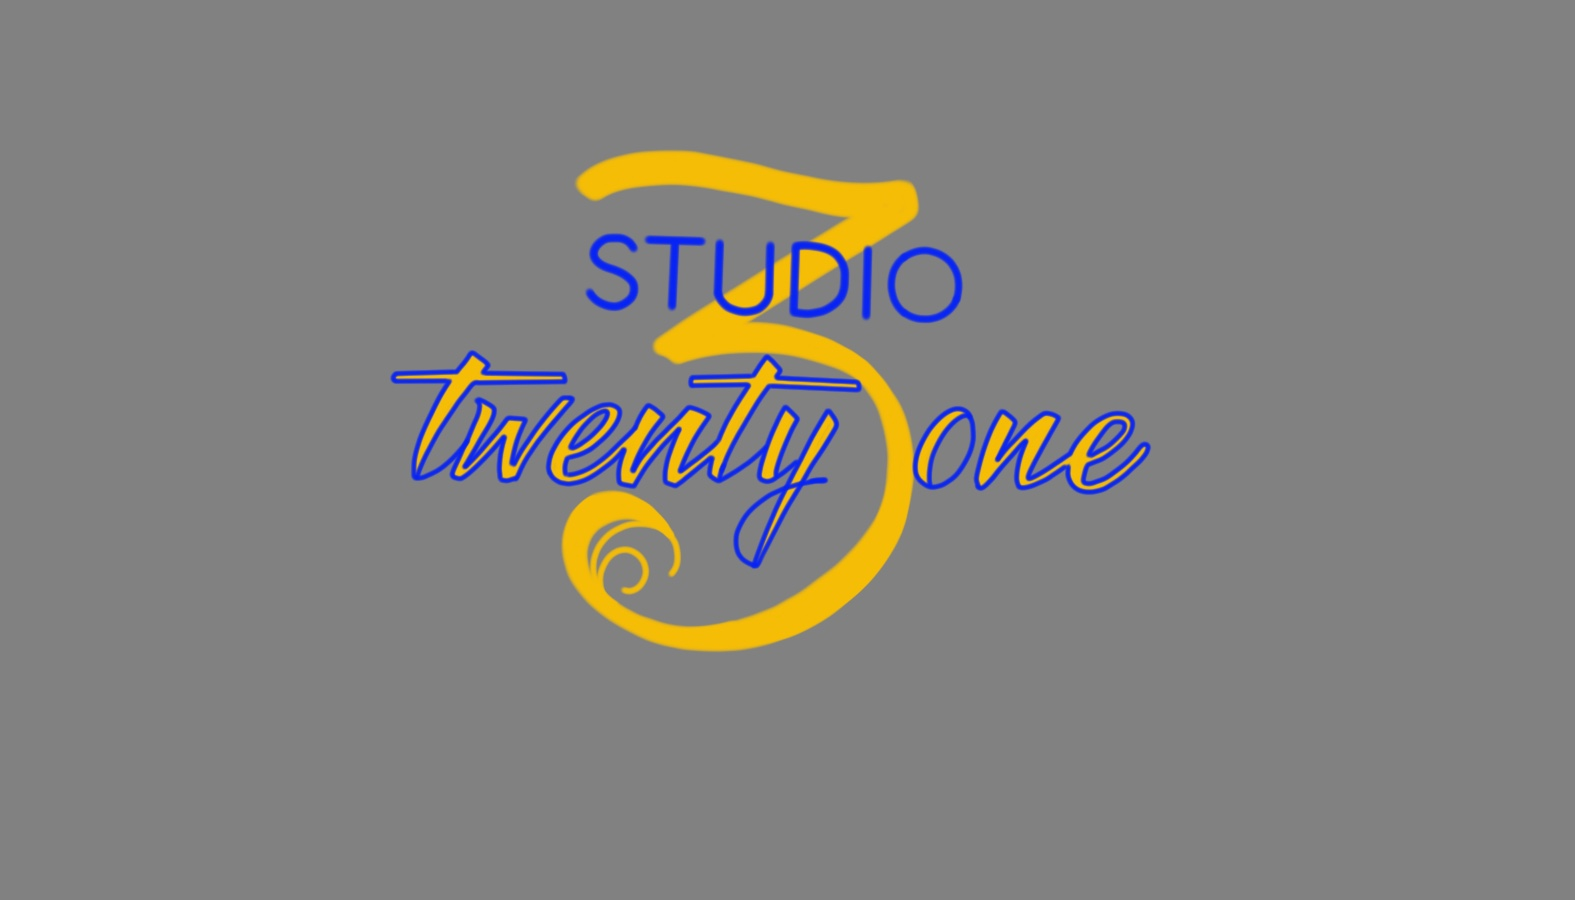 Studio 3 Twenty One image